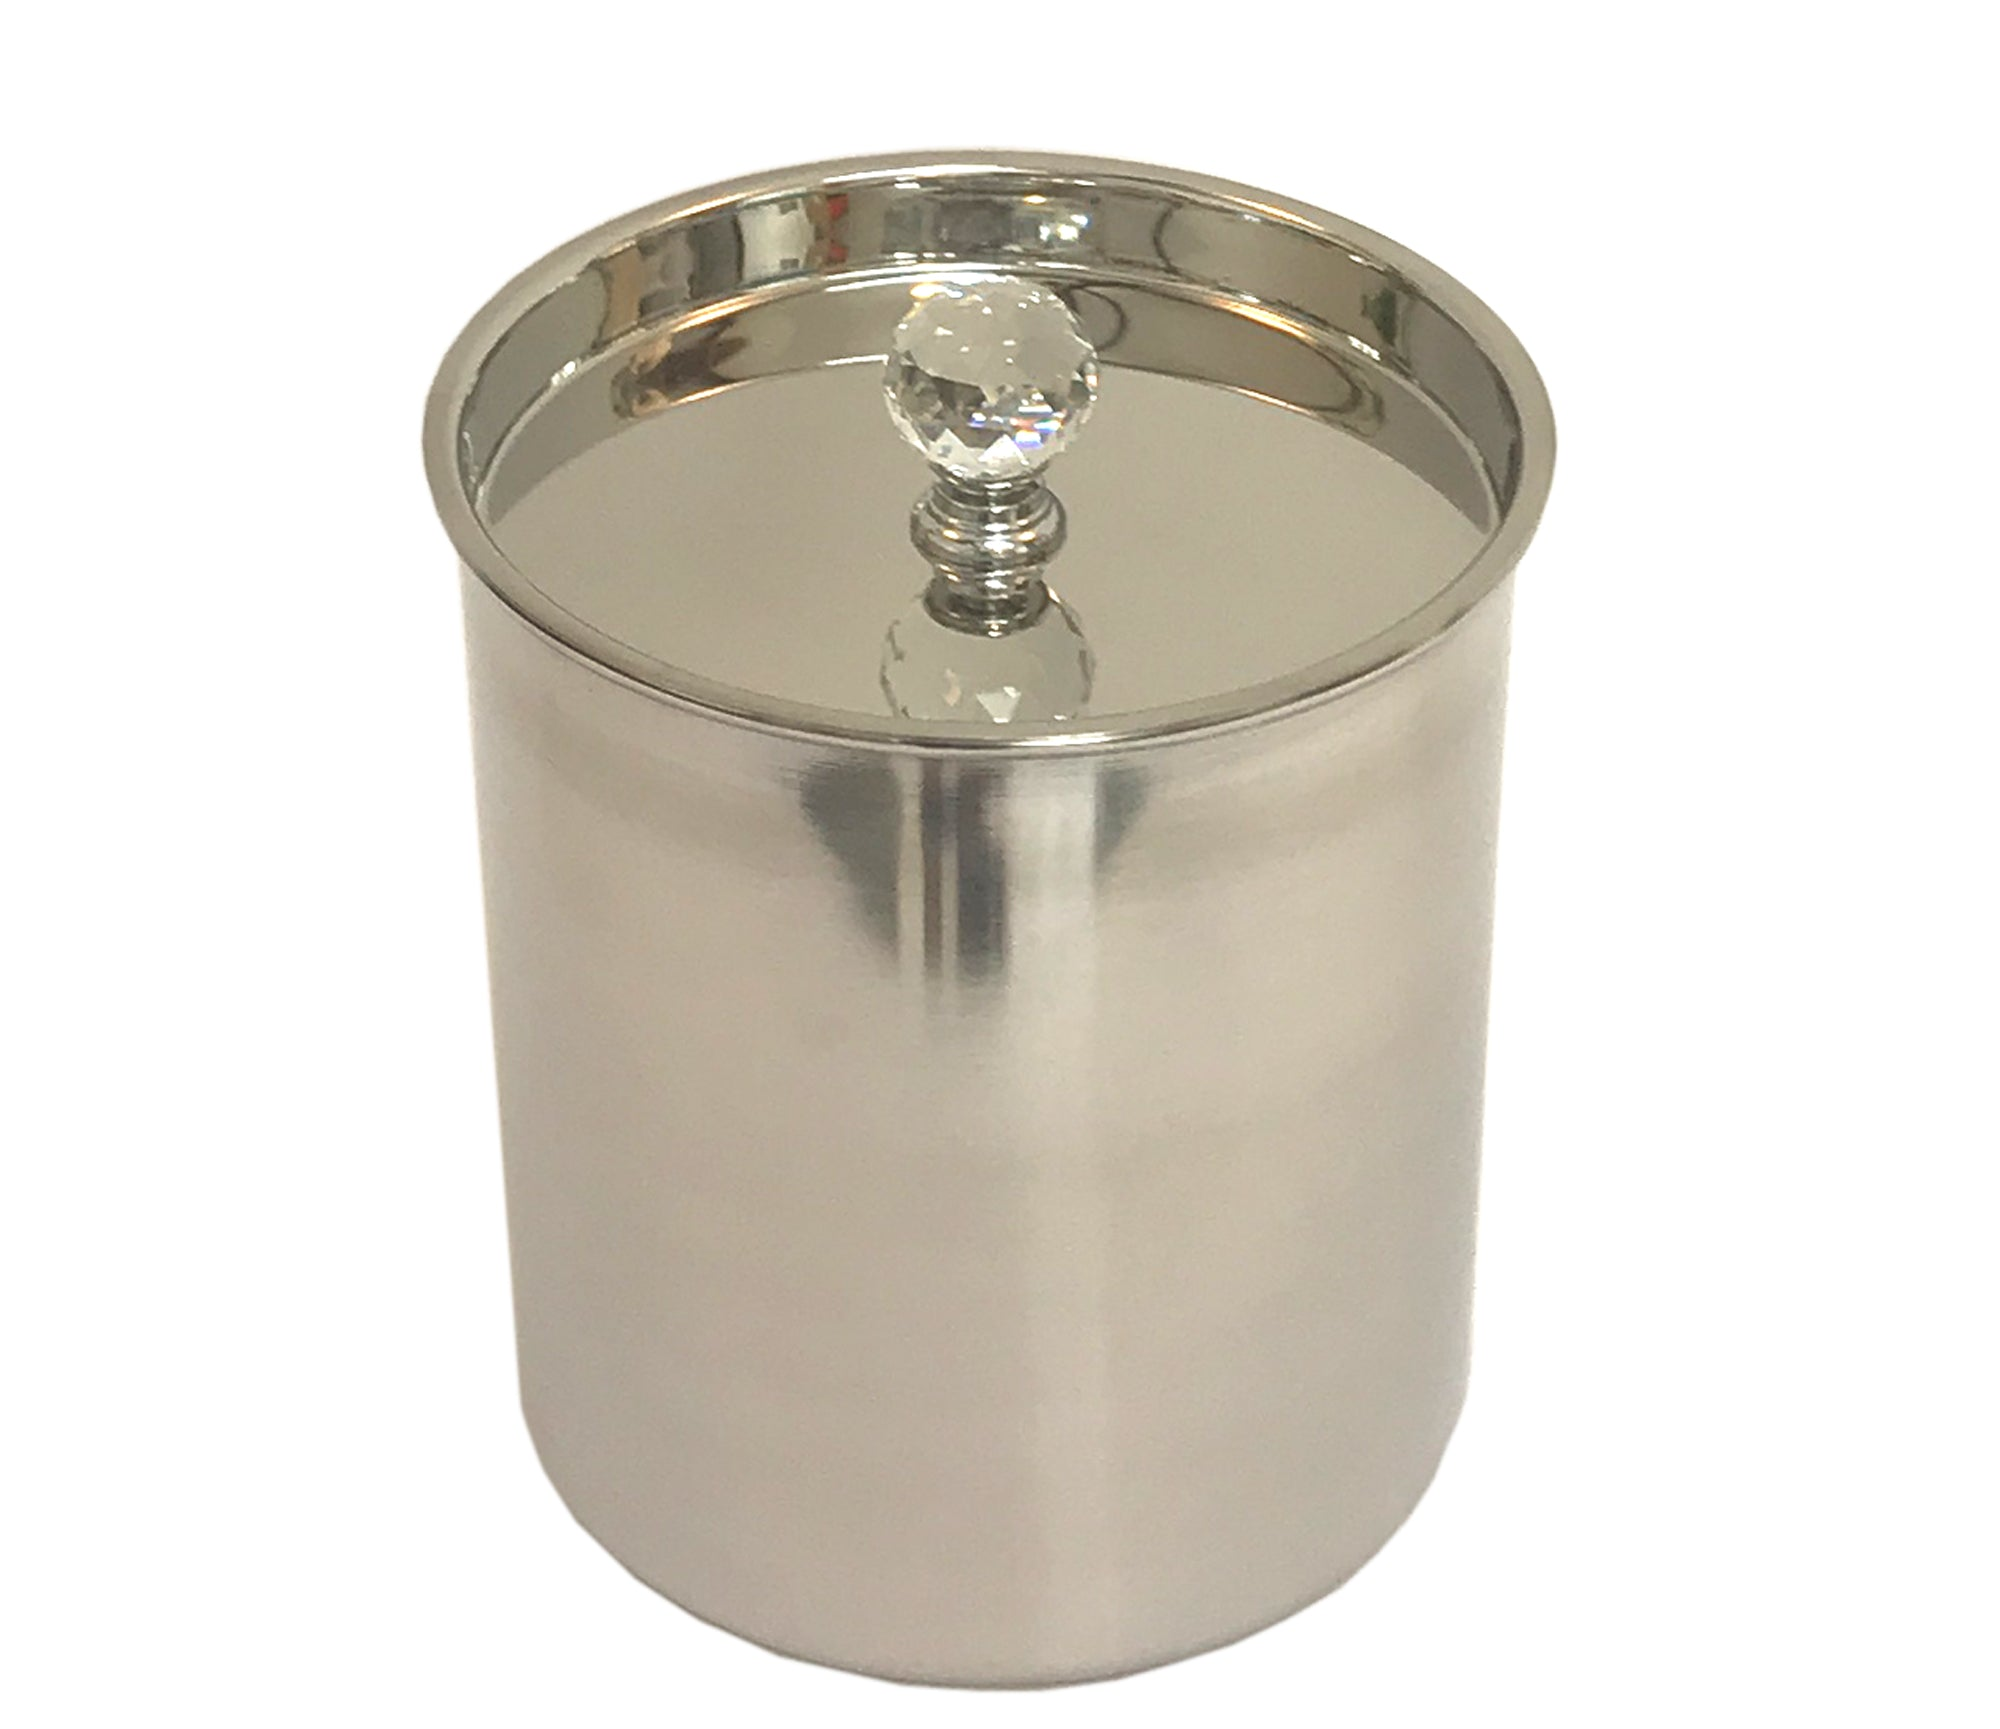 Ice Bucket With Crystal Handle, Ice Bins by Low Cost Gifts